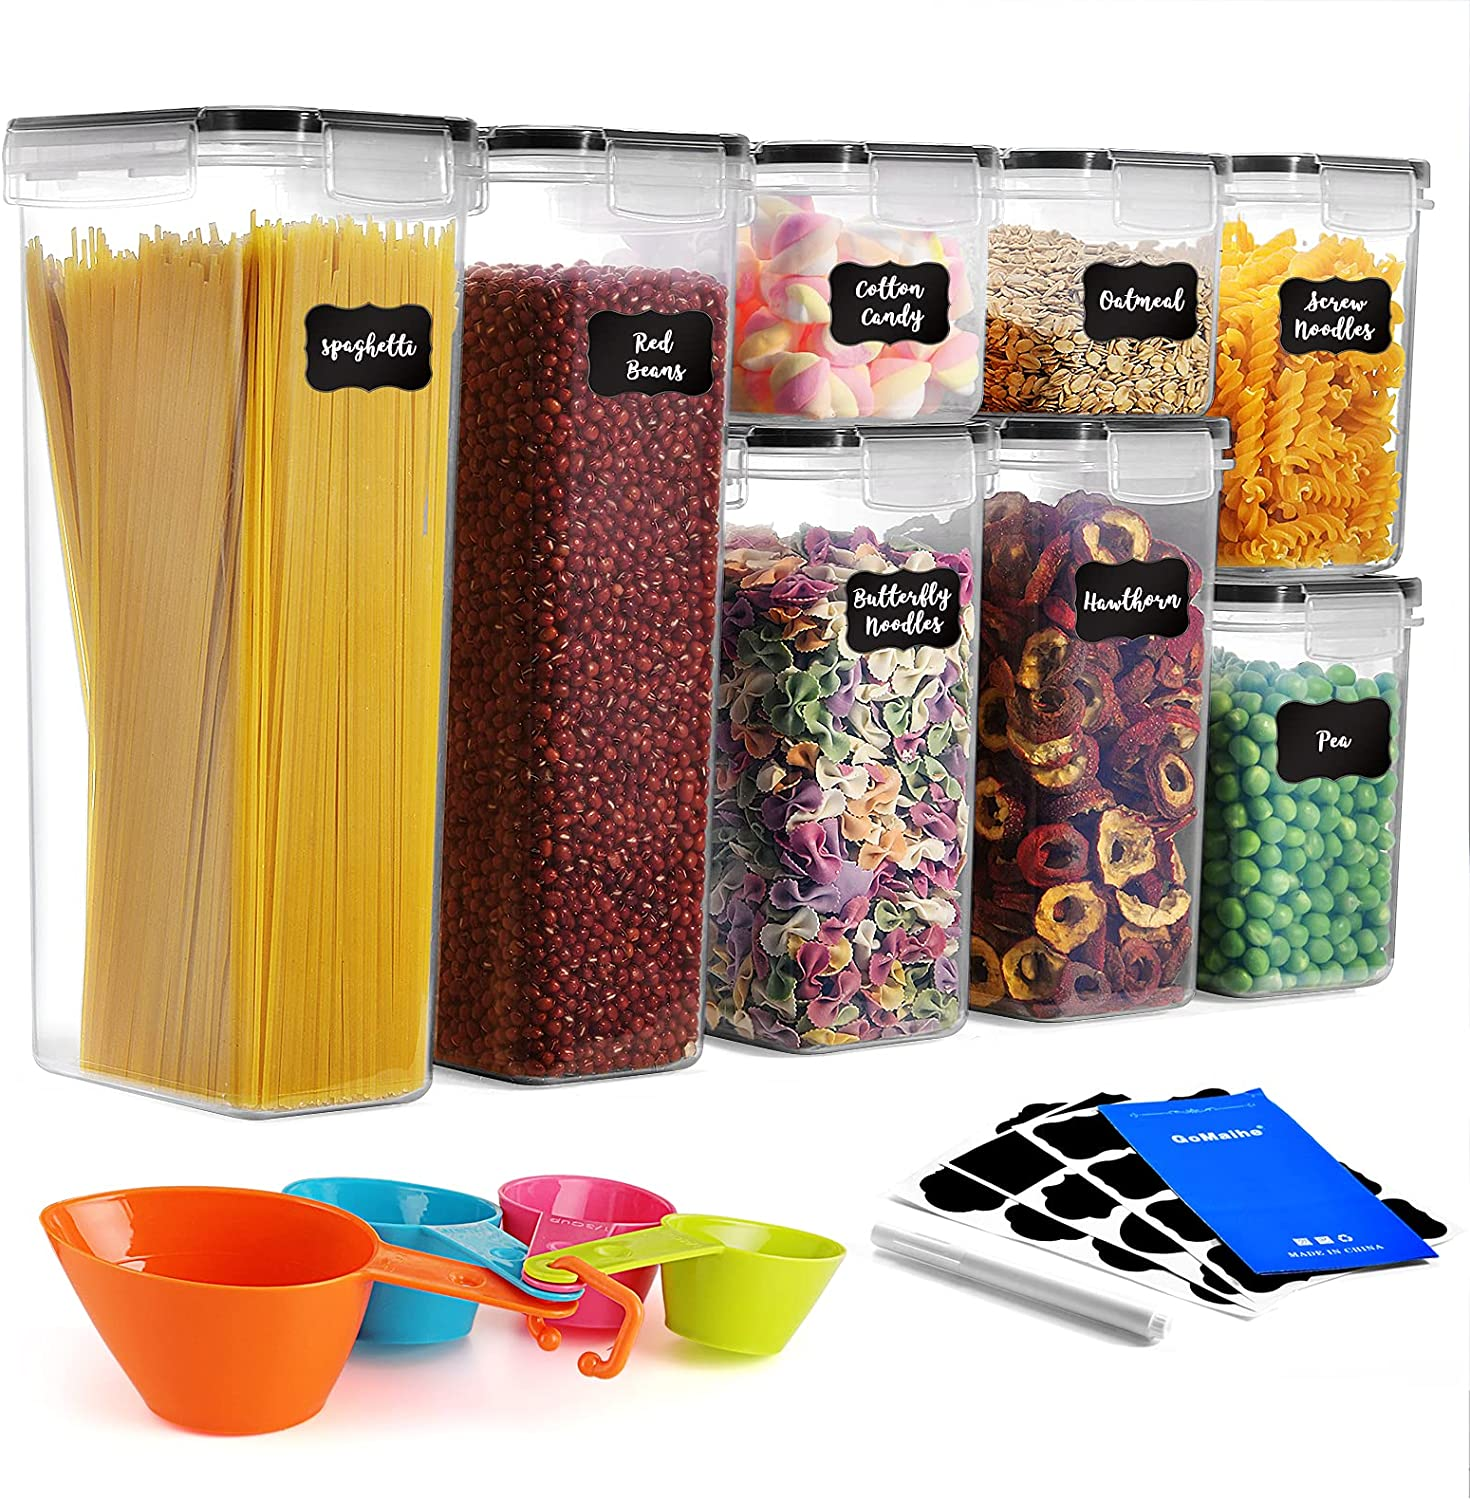 GoMaihe Food Storage Containers 8-Piece, Plastic Food Storage Containers with lids Airtight, Cereal Containers Storage set Suitable for Food, Cereal, Kitchen Pantry Organization and Storage, Black